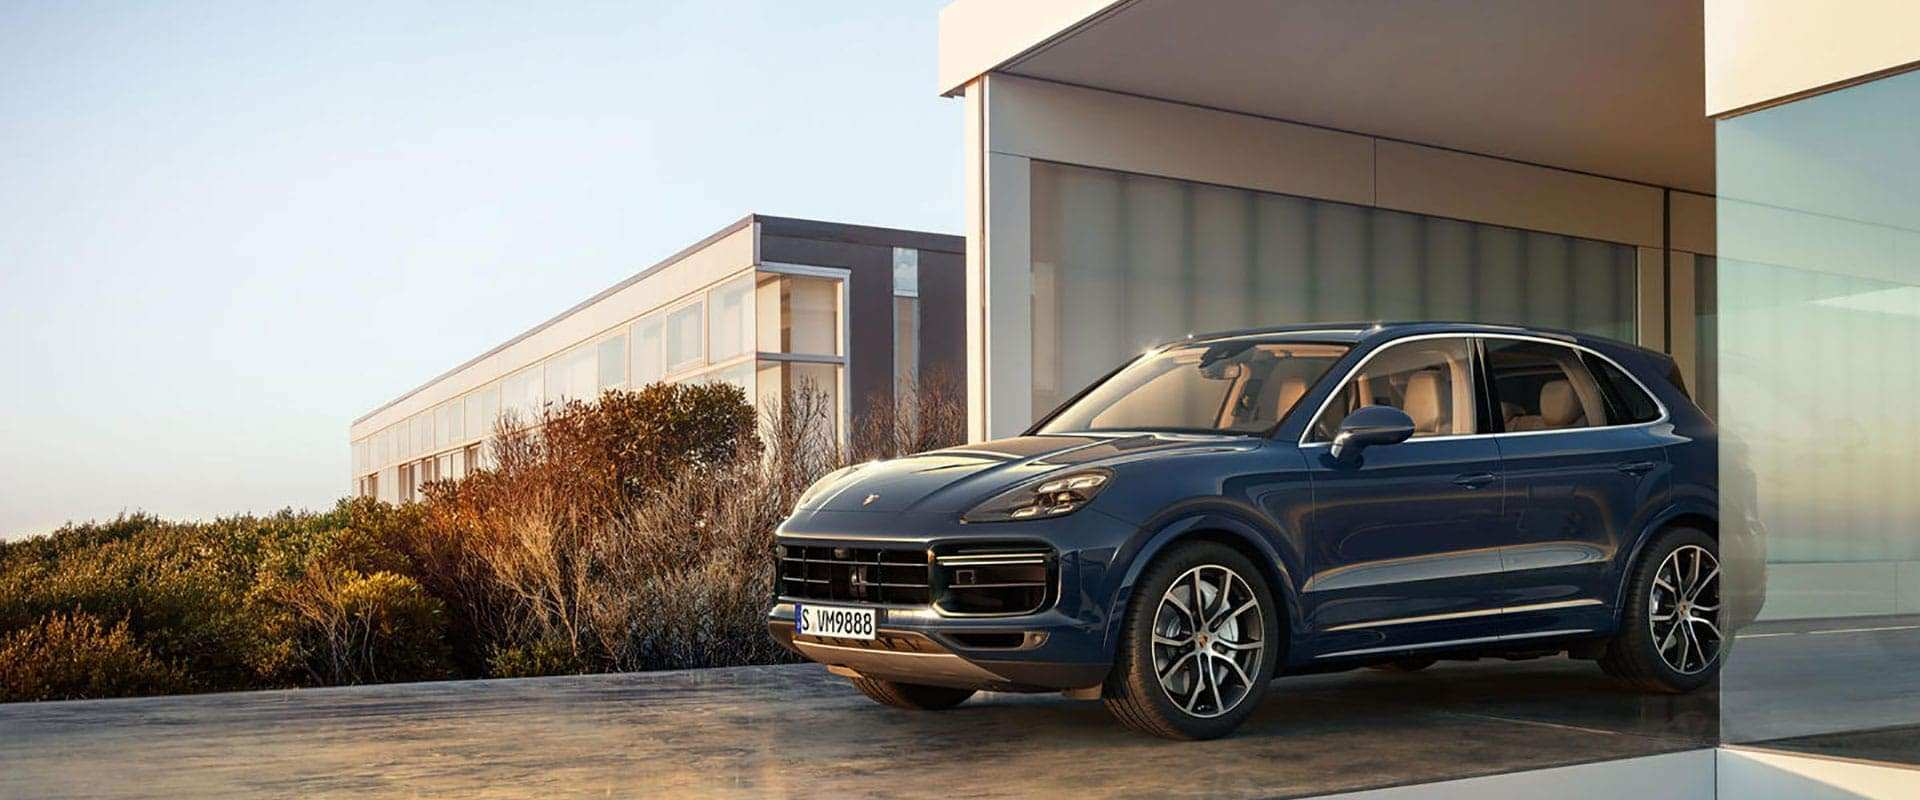 29 New 2019 Porsche Cayenne Specs Price and Review for 2019 Porsche Cayenne Specs